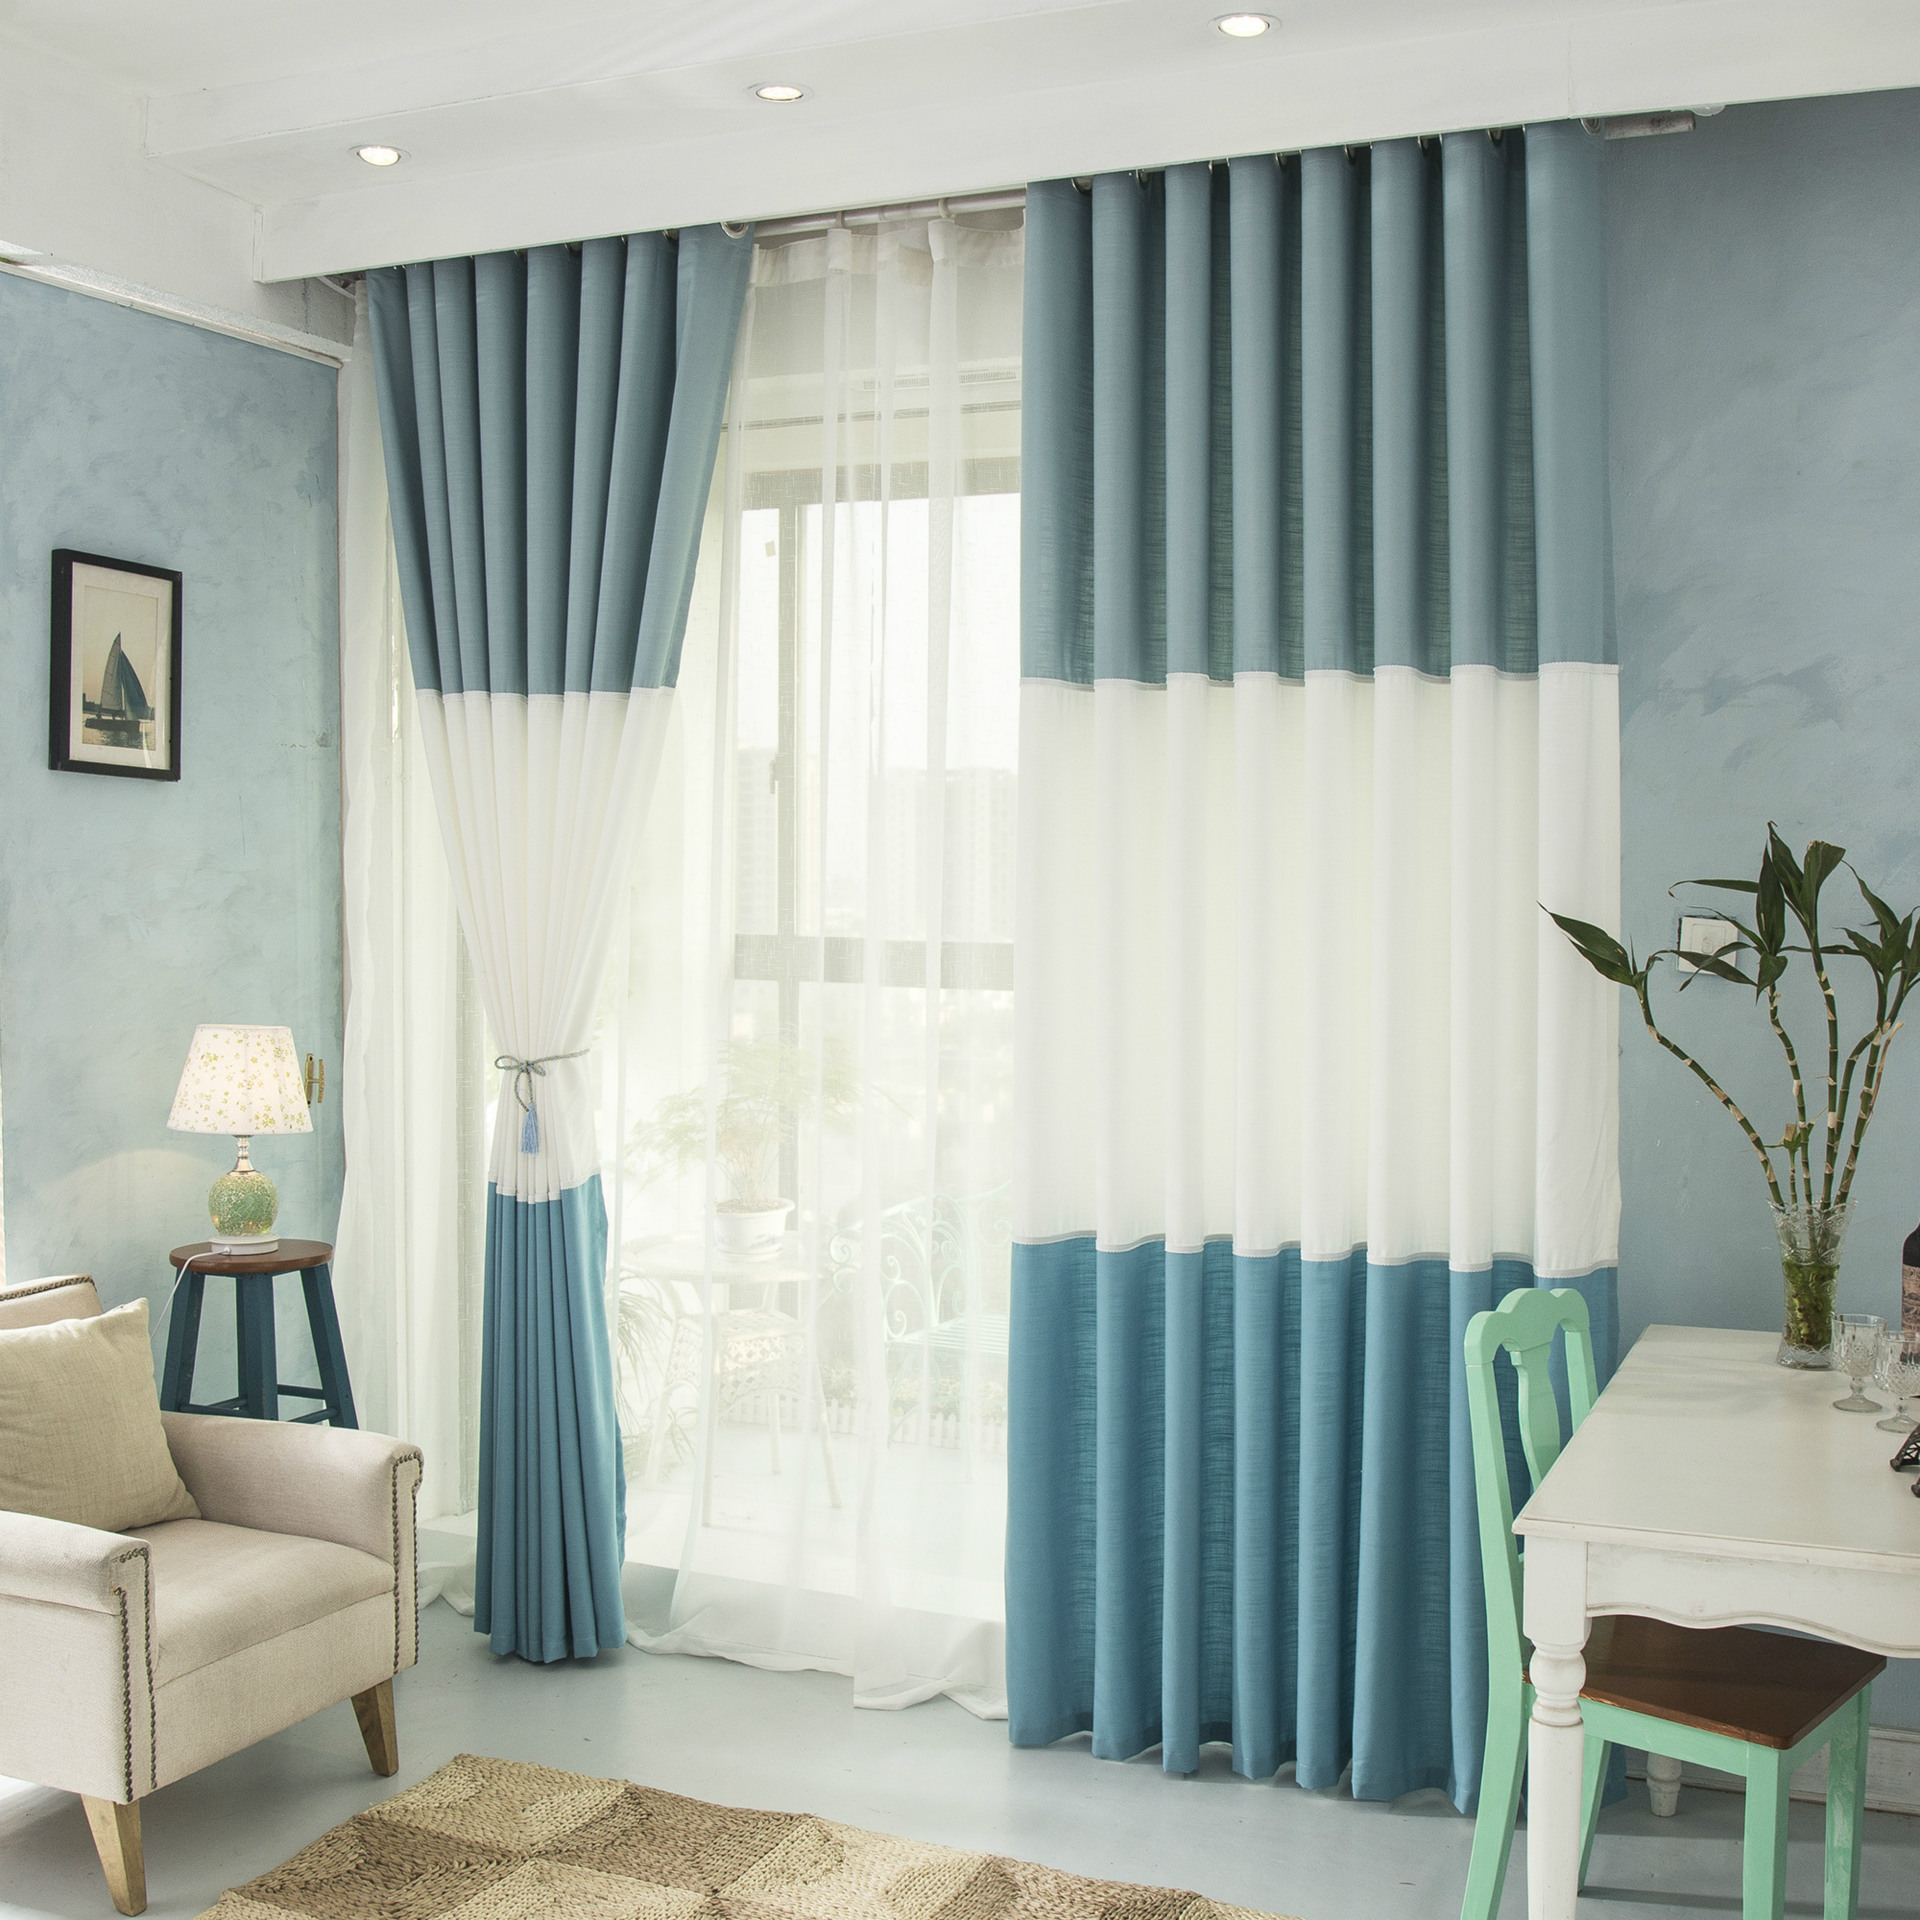 Living Room Blinds And Curtains Popular Room Blinds Buy Cheap Room Blinds Lots From China Room